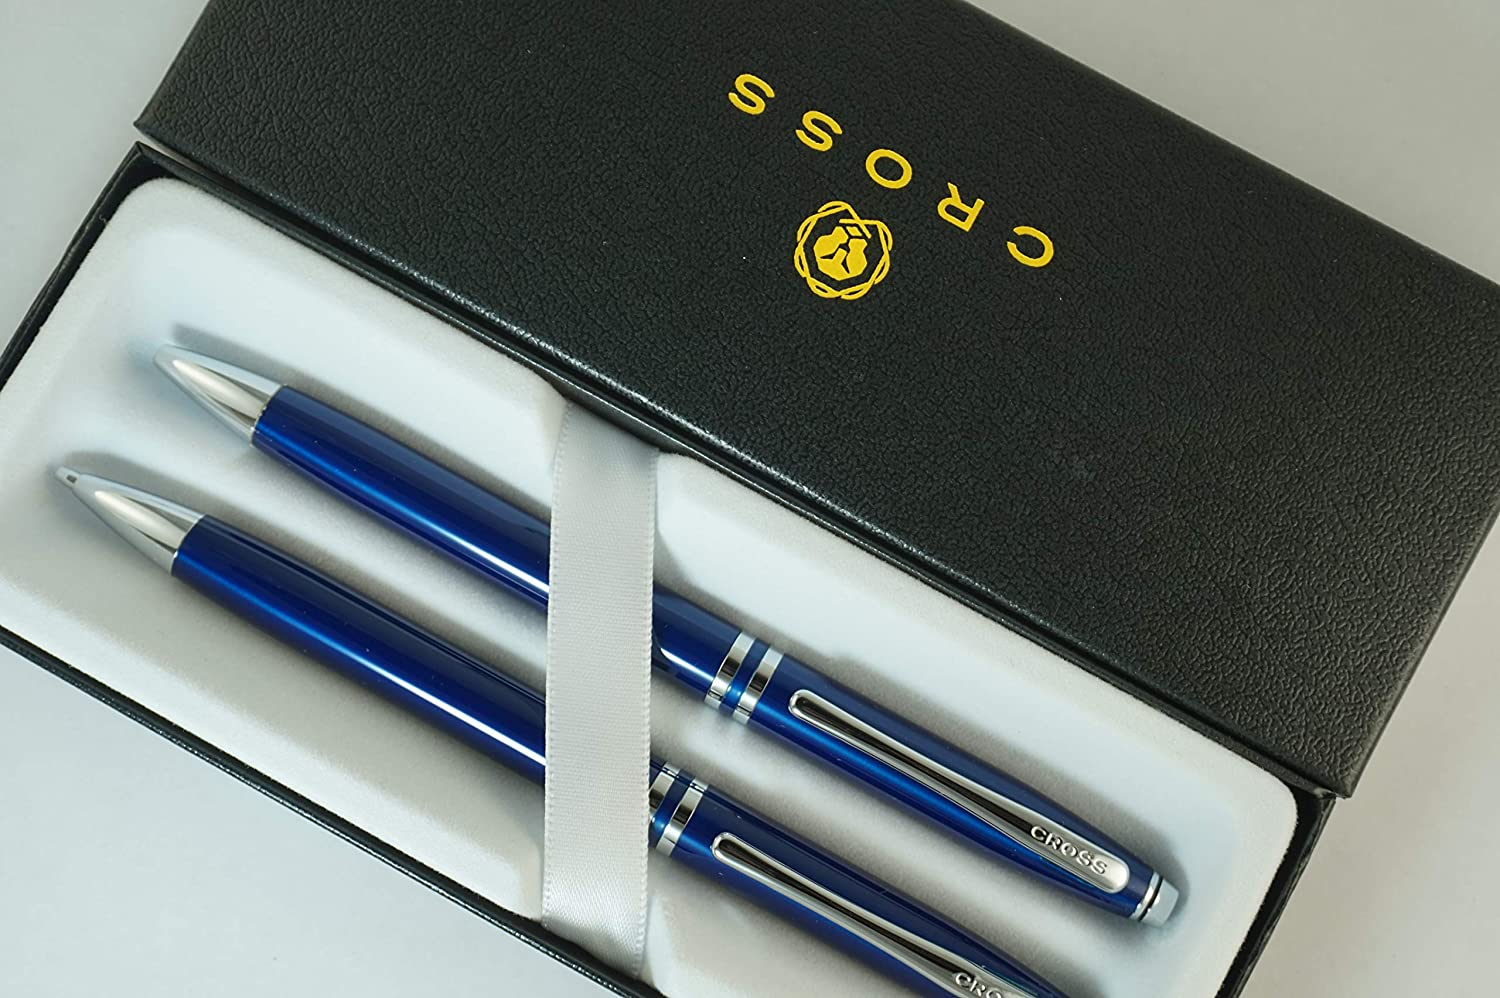 Cross Classic Executive Companion Avatar Midnight Blue Lacquer and Extremely Polished Chrome Appointments with Distinctive Cross Special Signature Mid Rings, Pen and 0.7MM Pencil Set.